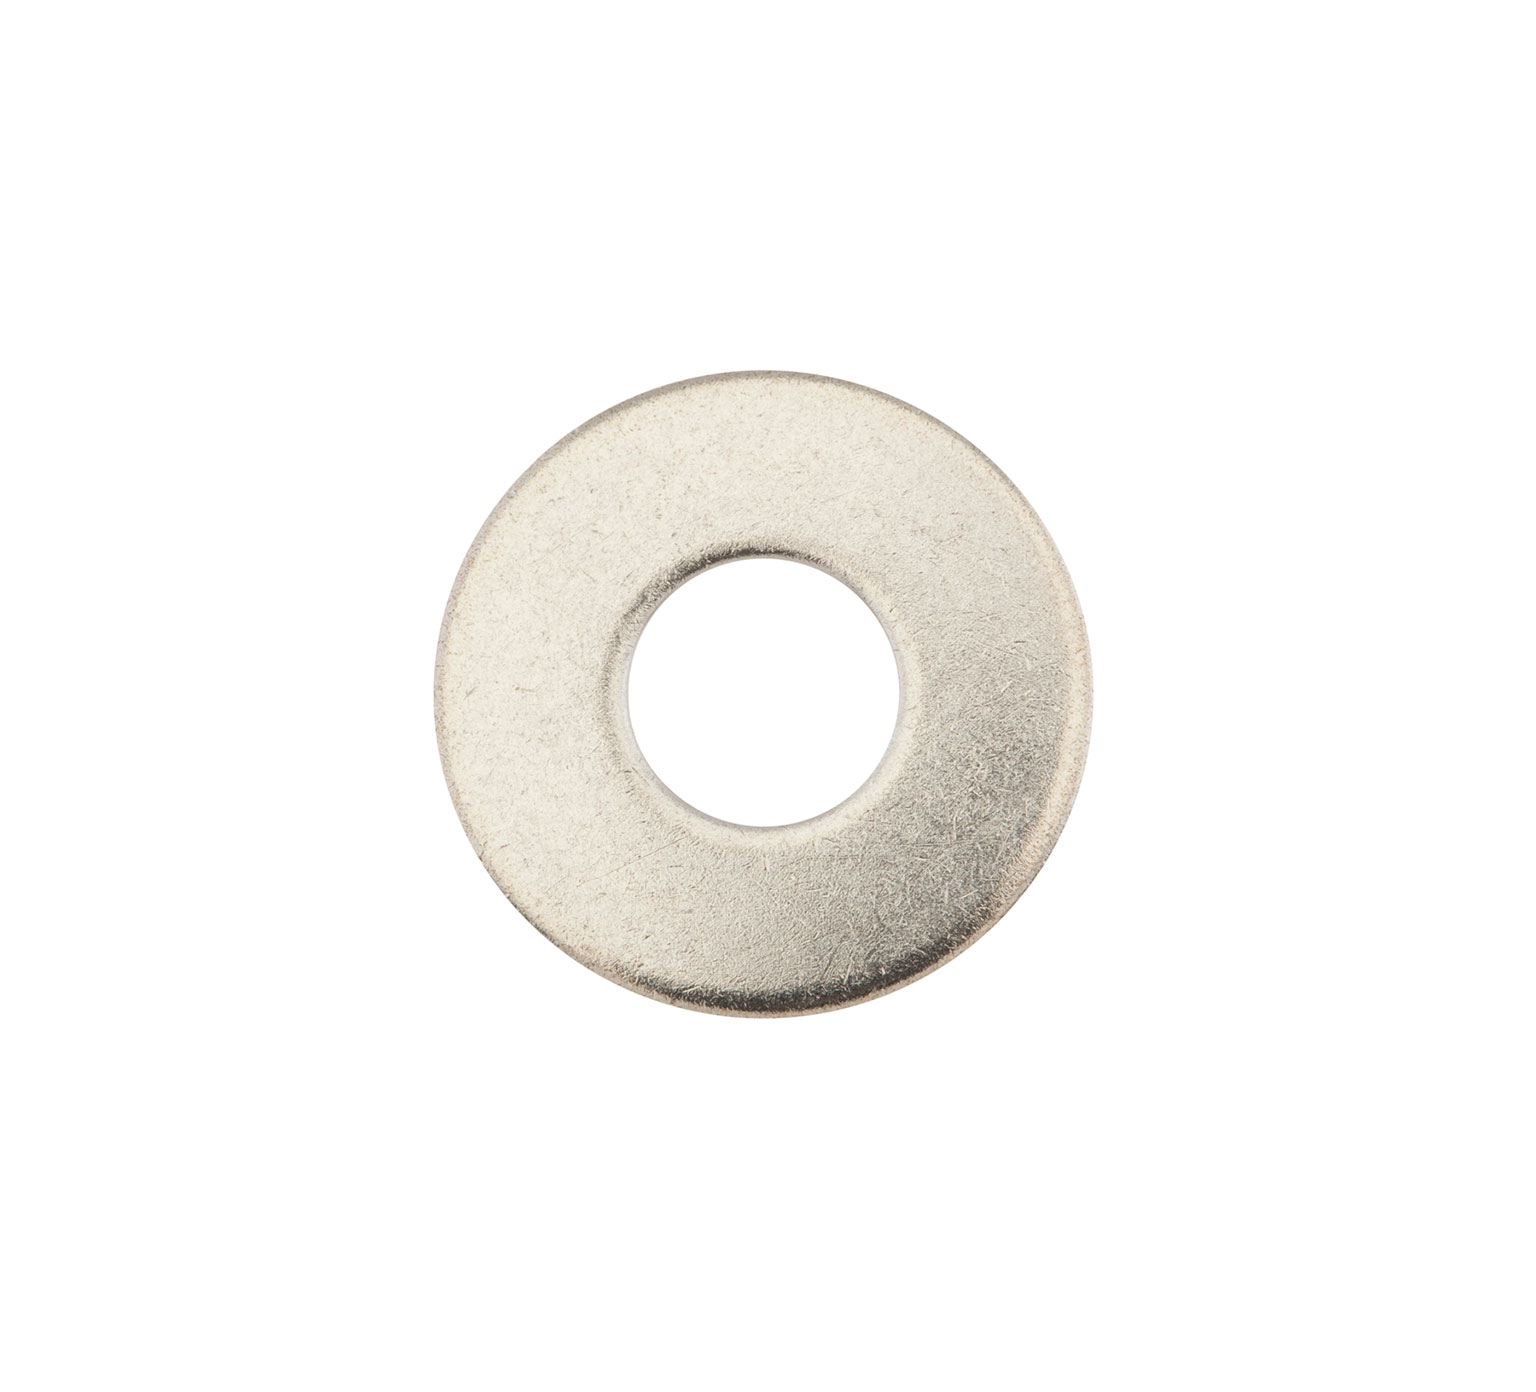 140045 Stainless Steel Flat Washer - 1.25 OD x 0.55 ID x 0.06 in alt 1